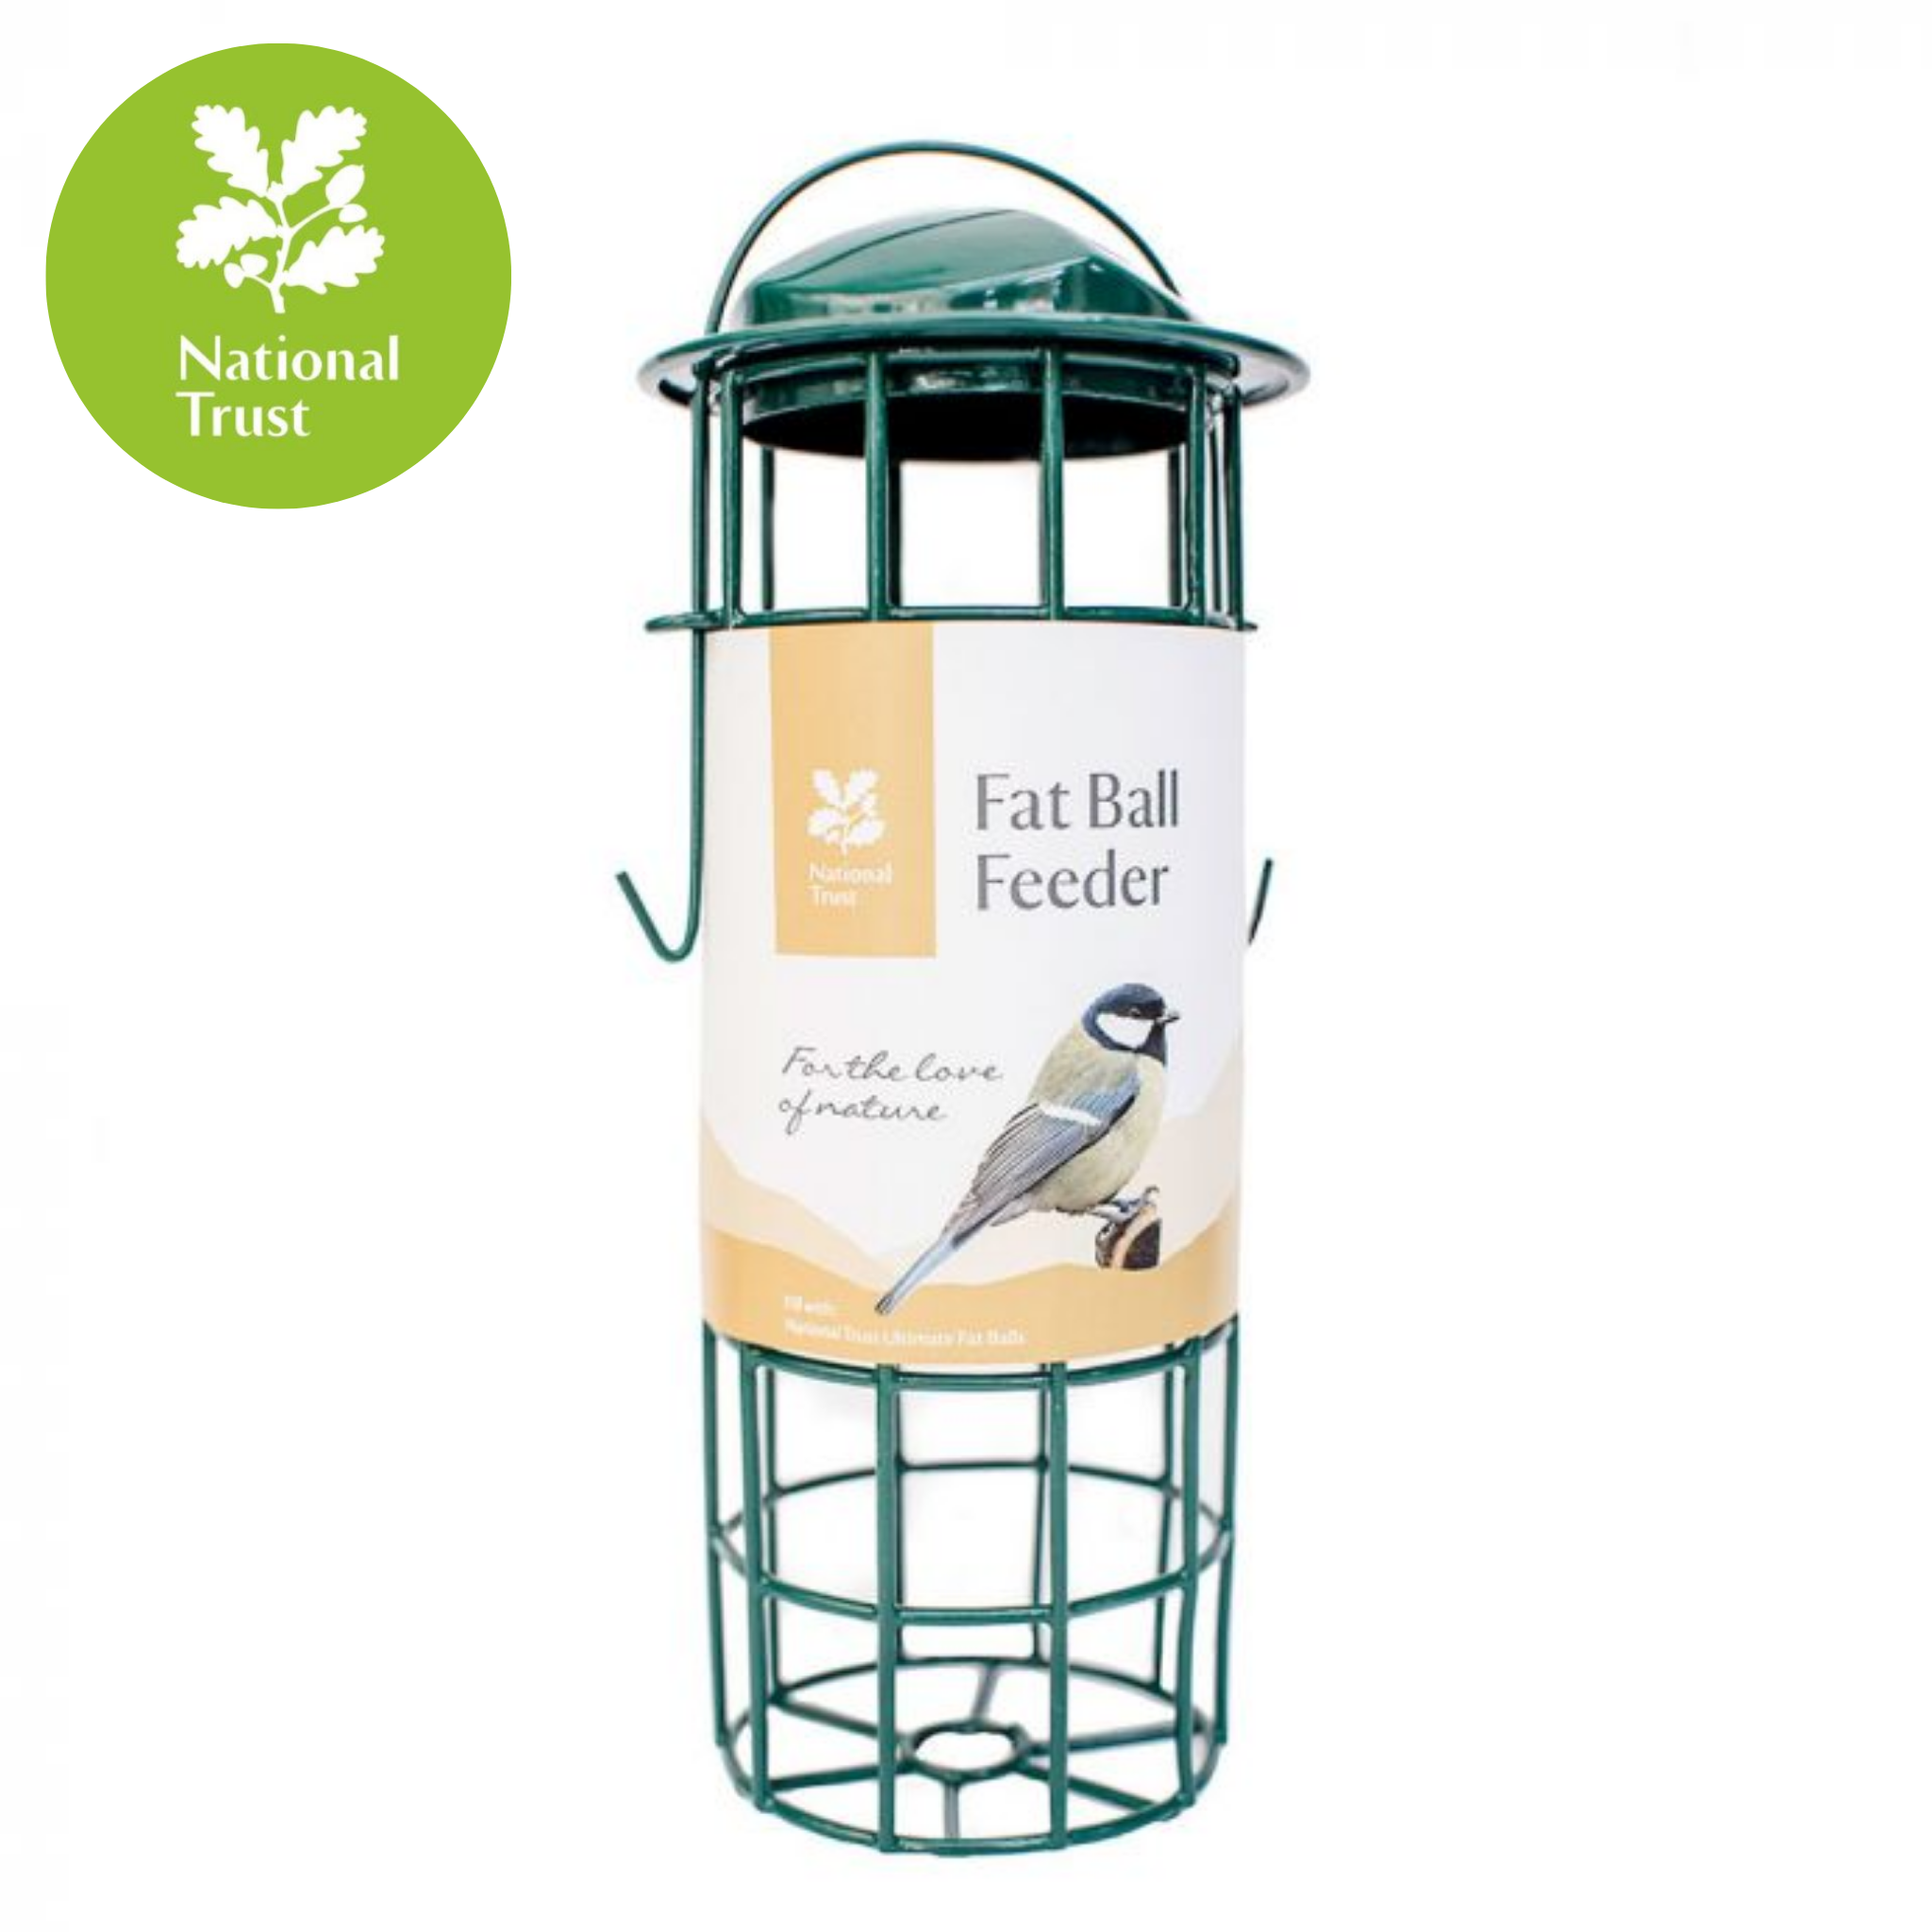 National Trust Metal Upright Fat Ball Feeder, Bird Food by Dog In A Box